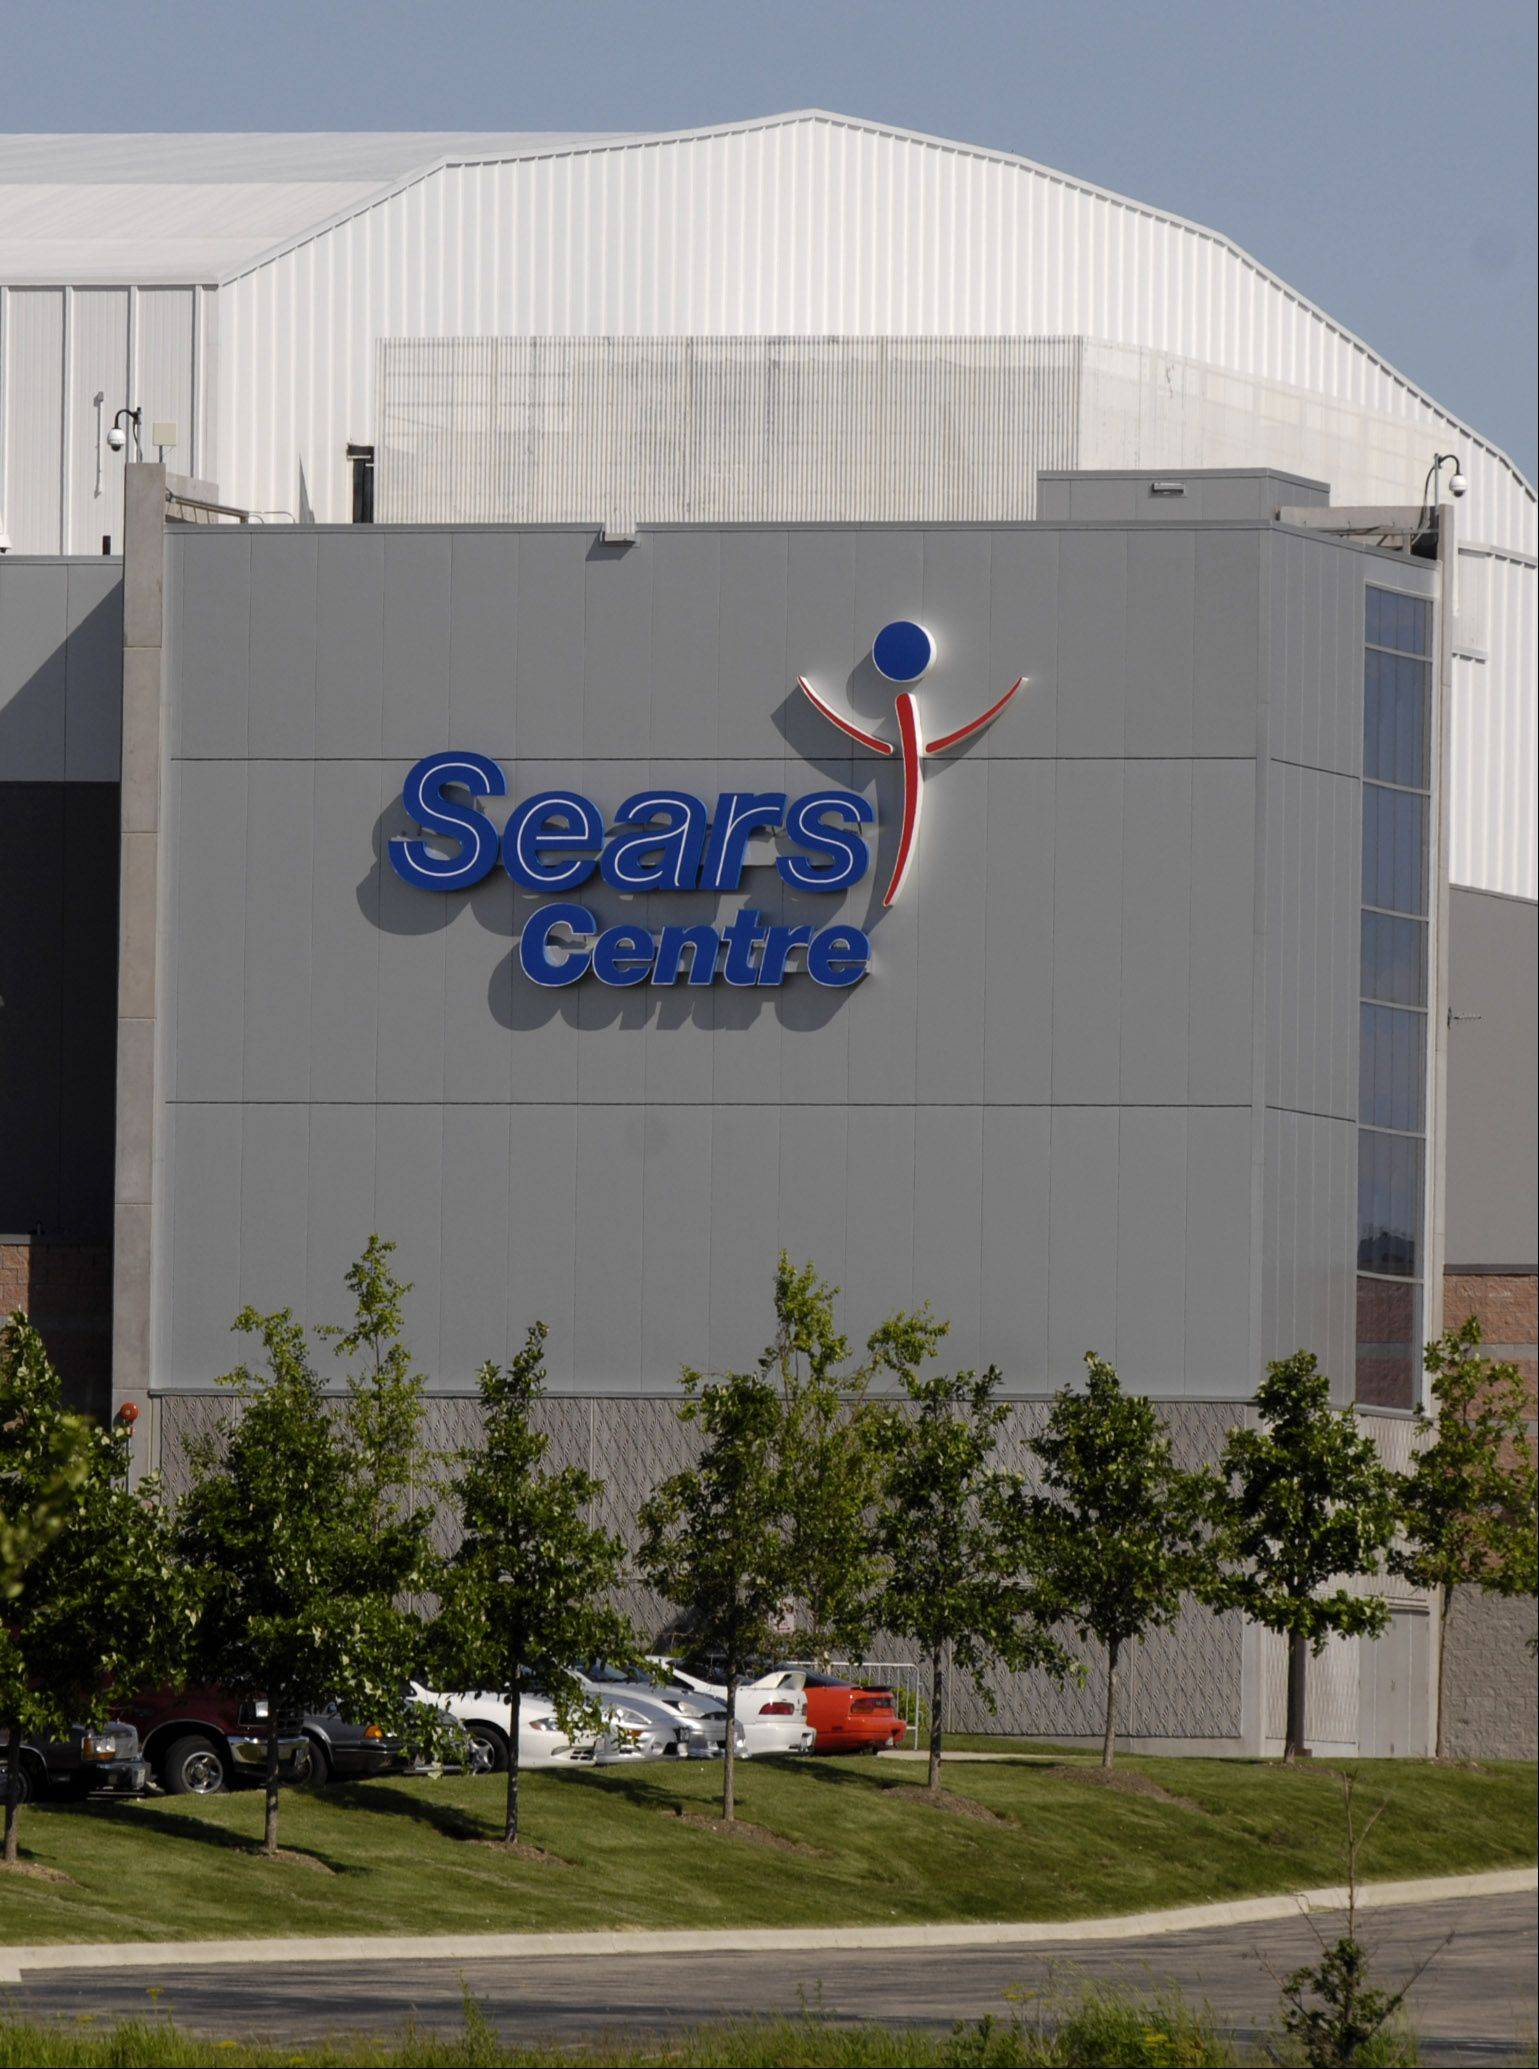 The Sears Centre Arena.